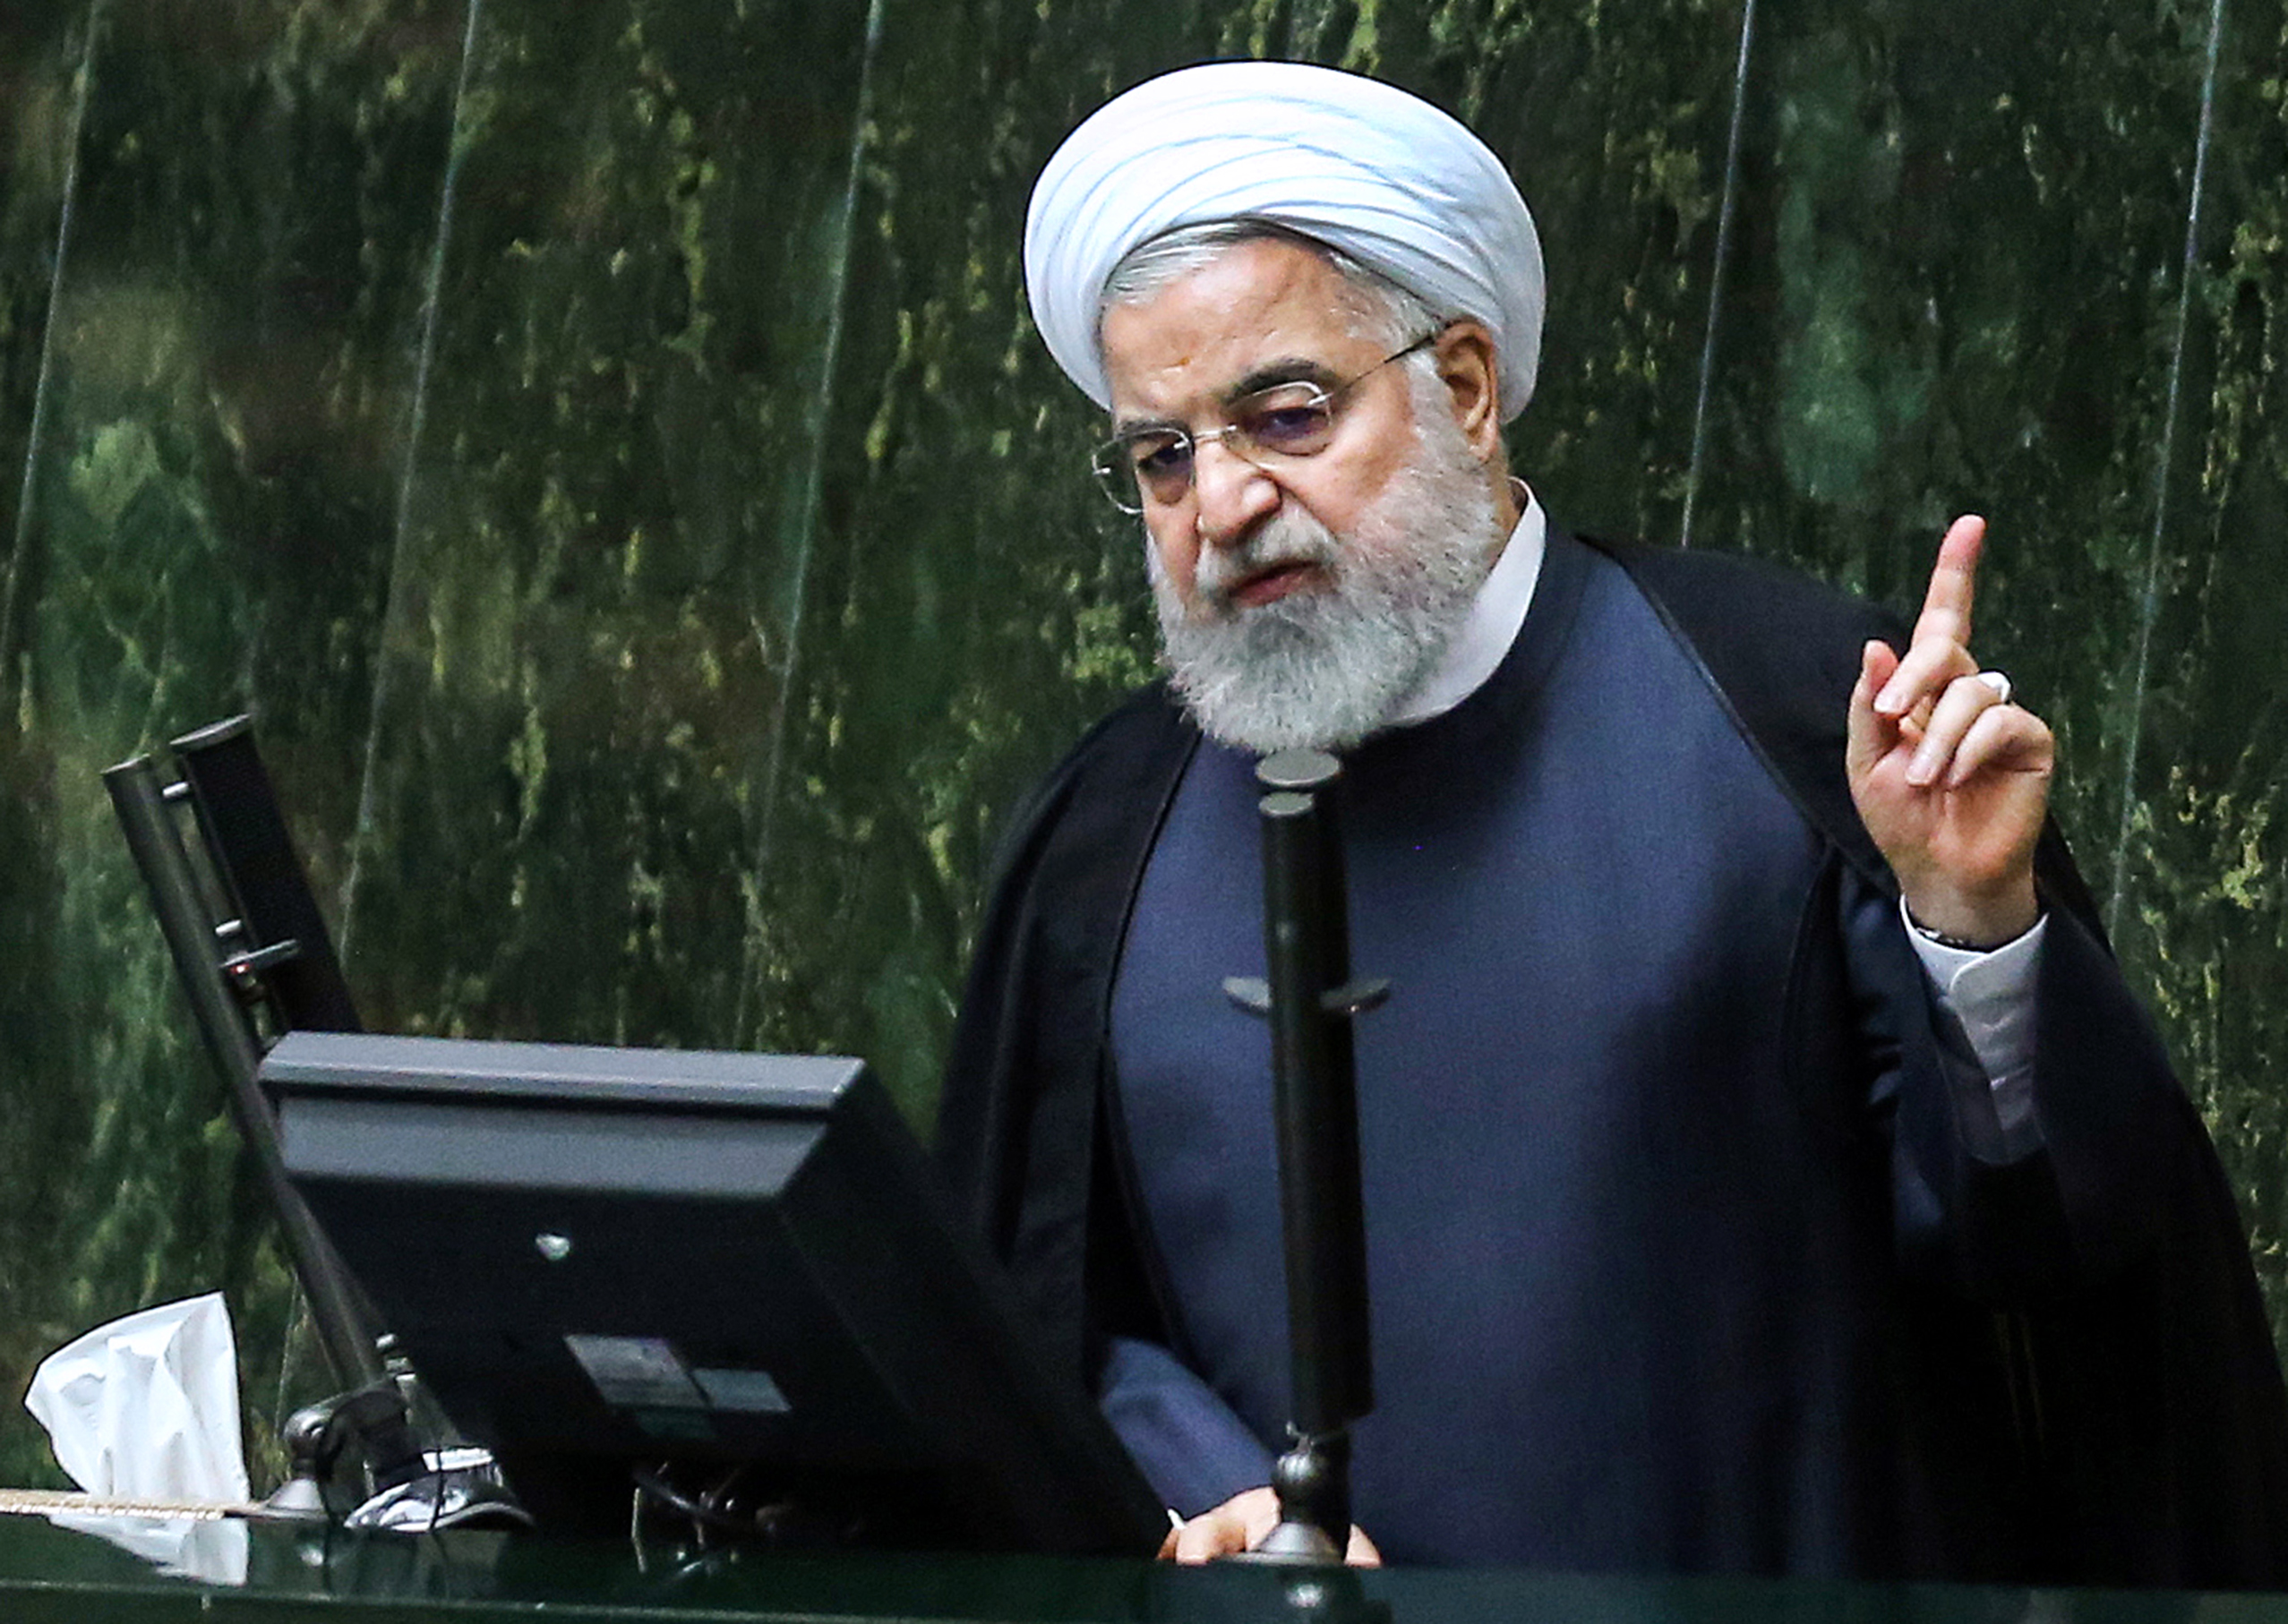 Iranian President Hassan Rouhani raises a finger while speaking at a podium.